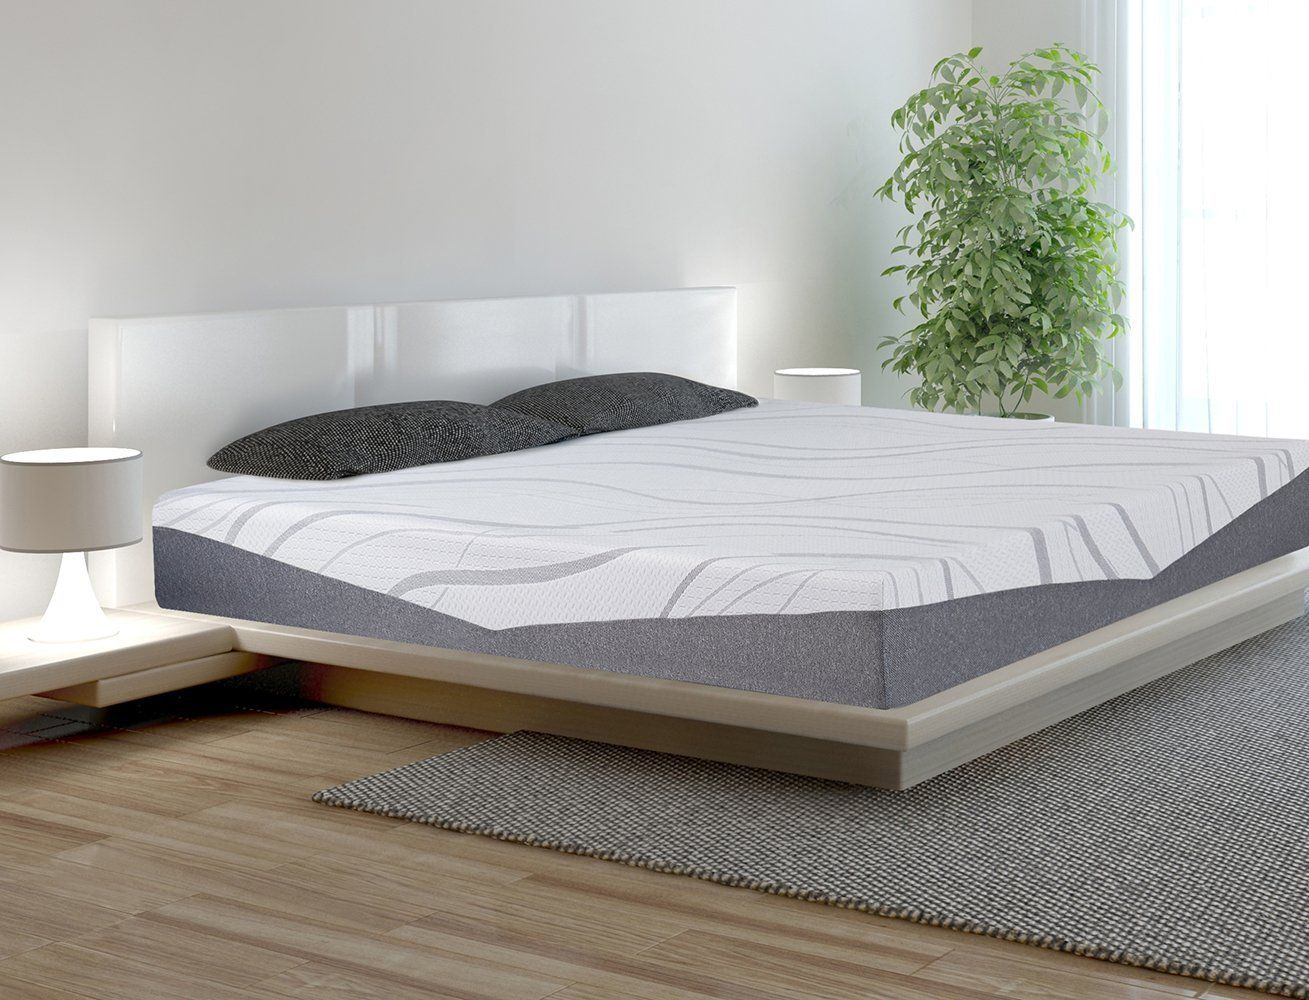 sleeplace 10 inch ultra comfort multi layer memory foam mattress